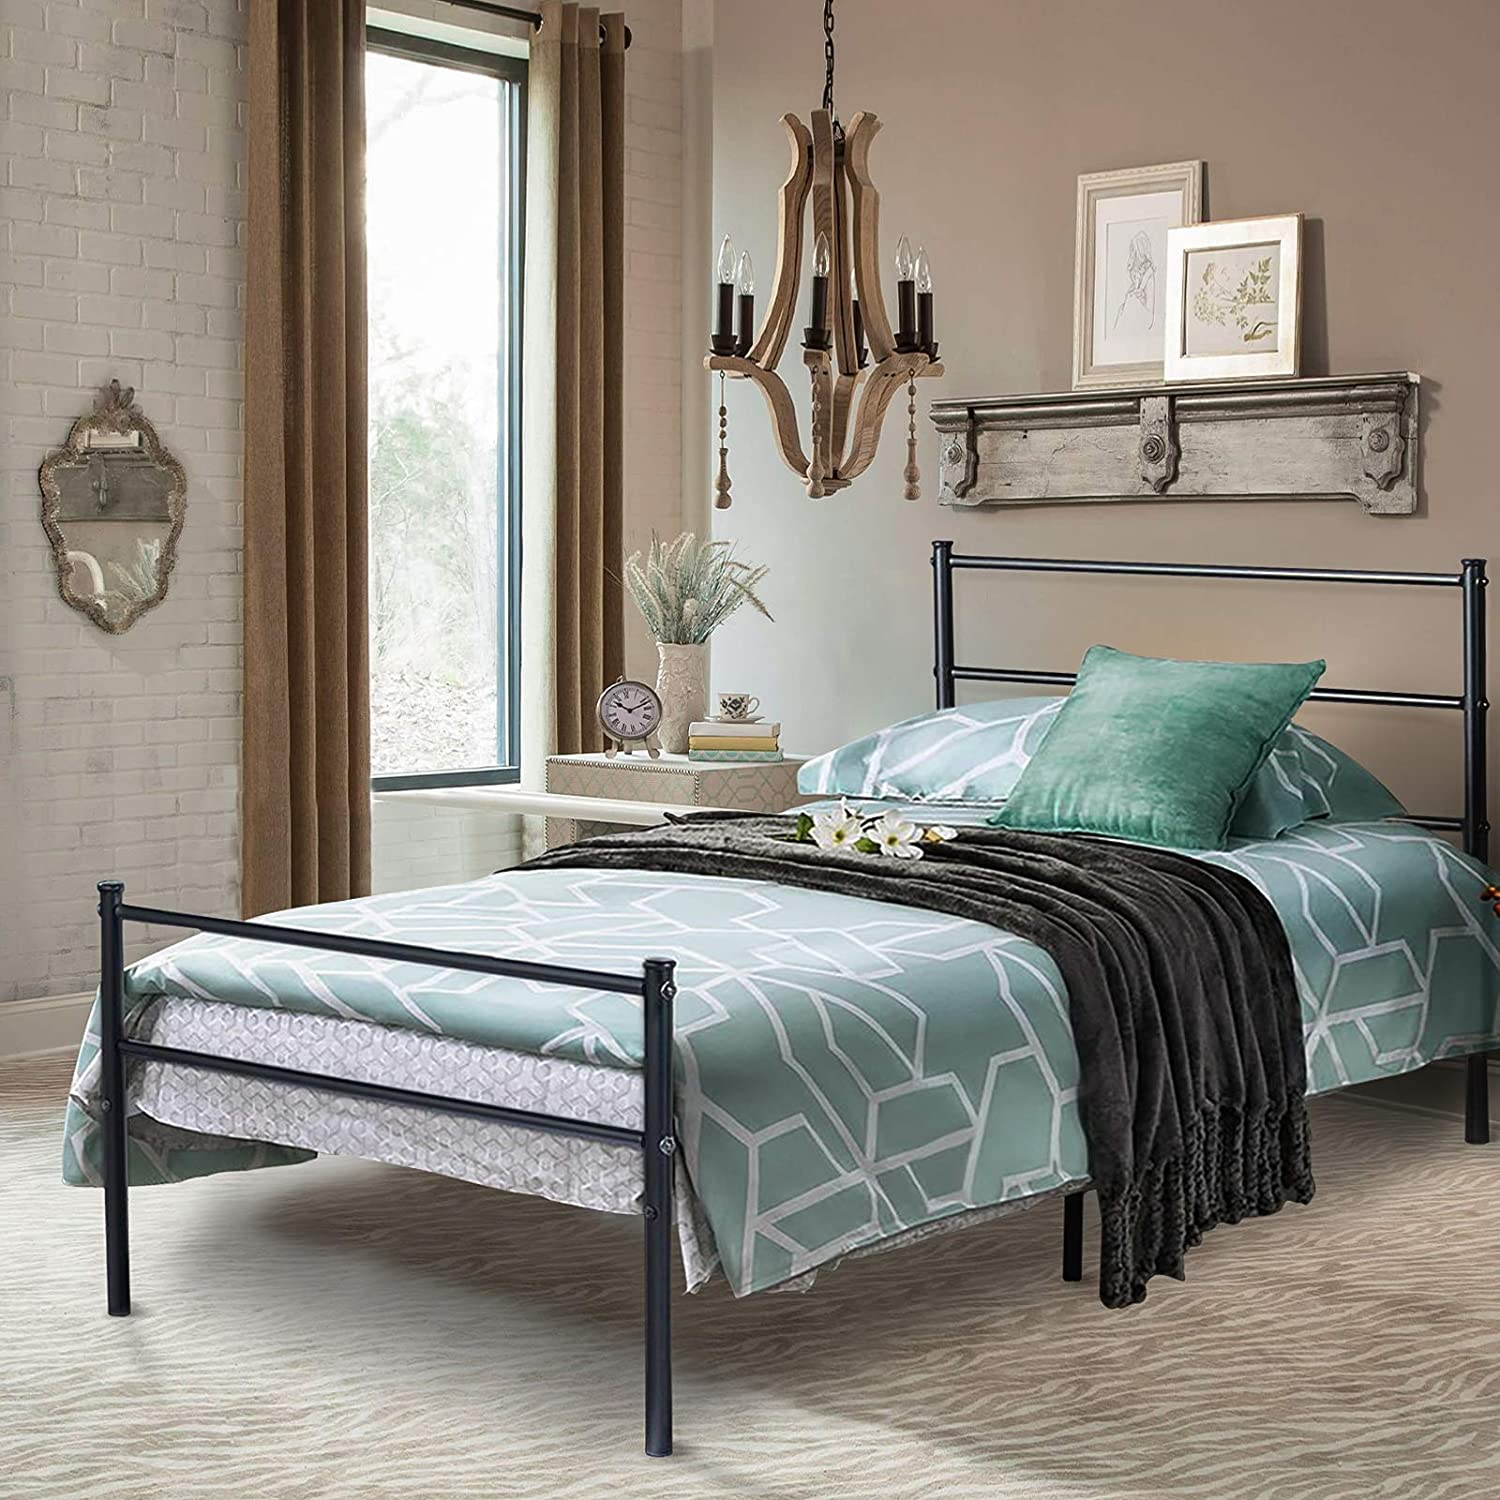 Voilamart Twin Metal Bed 直輸入品激安 Frames Single Storage with 直輸入品激安 He